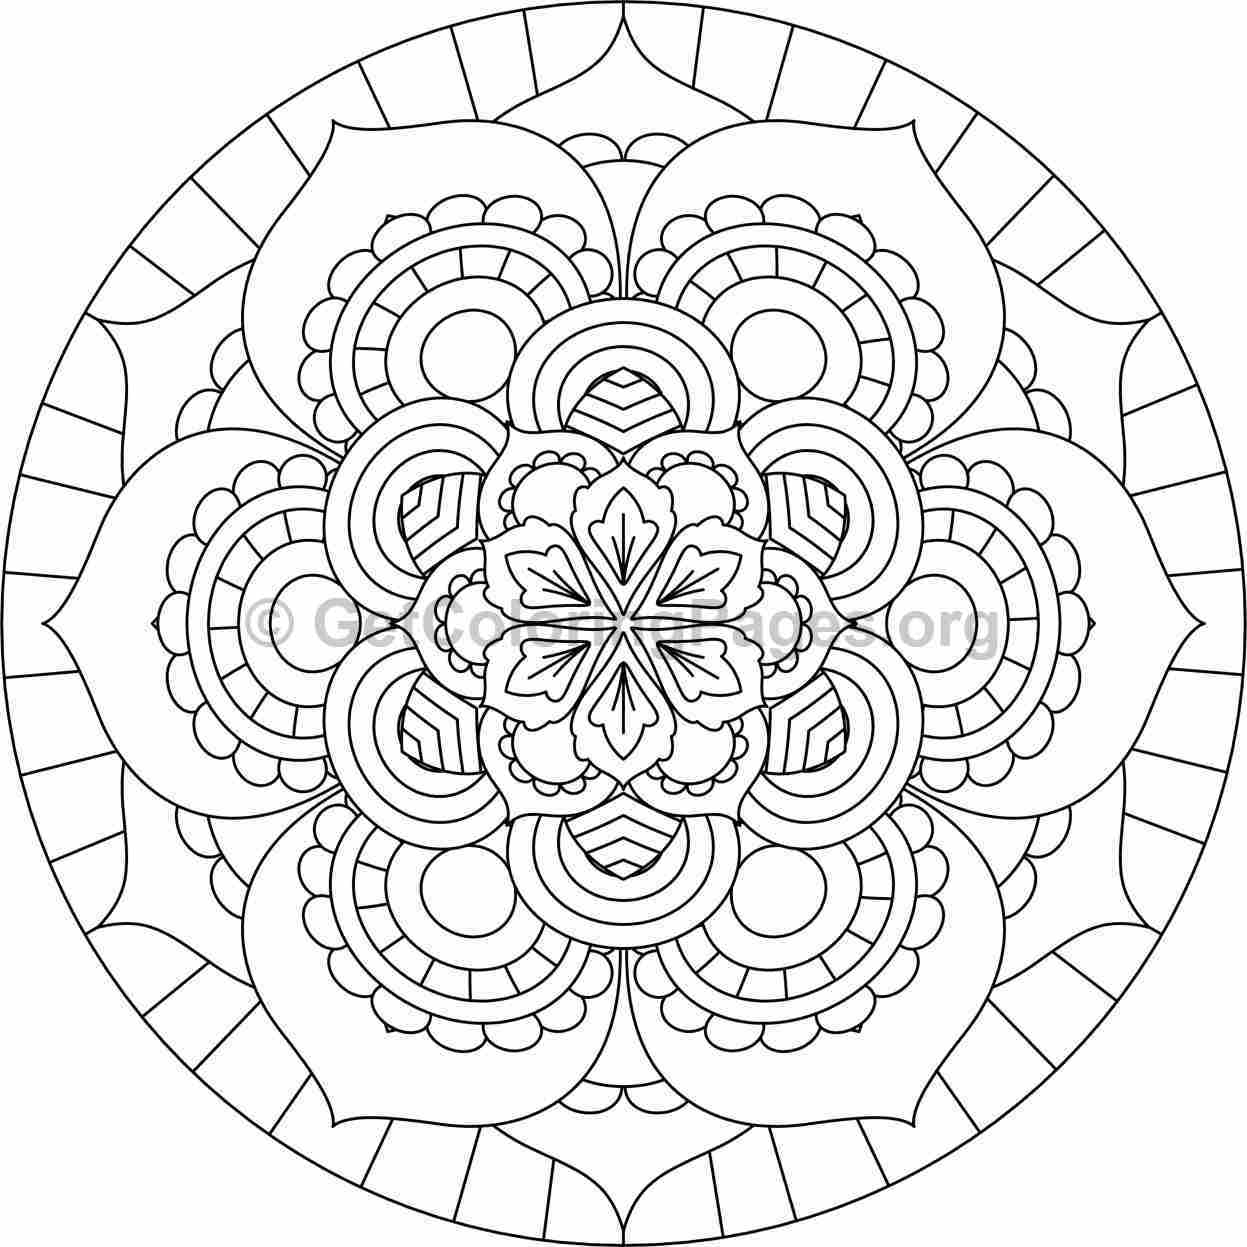 Number 15 Coloring Page Getcoloringpages Com Coloring Coloring Pages